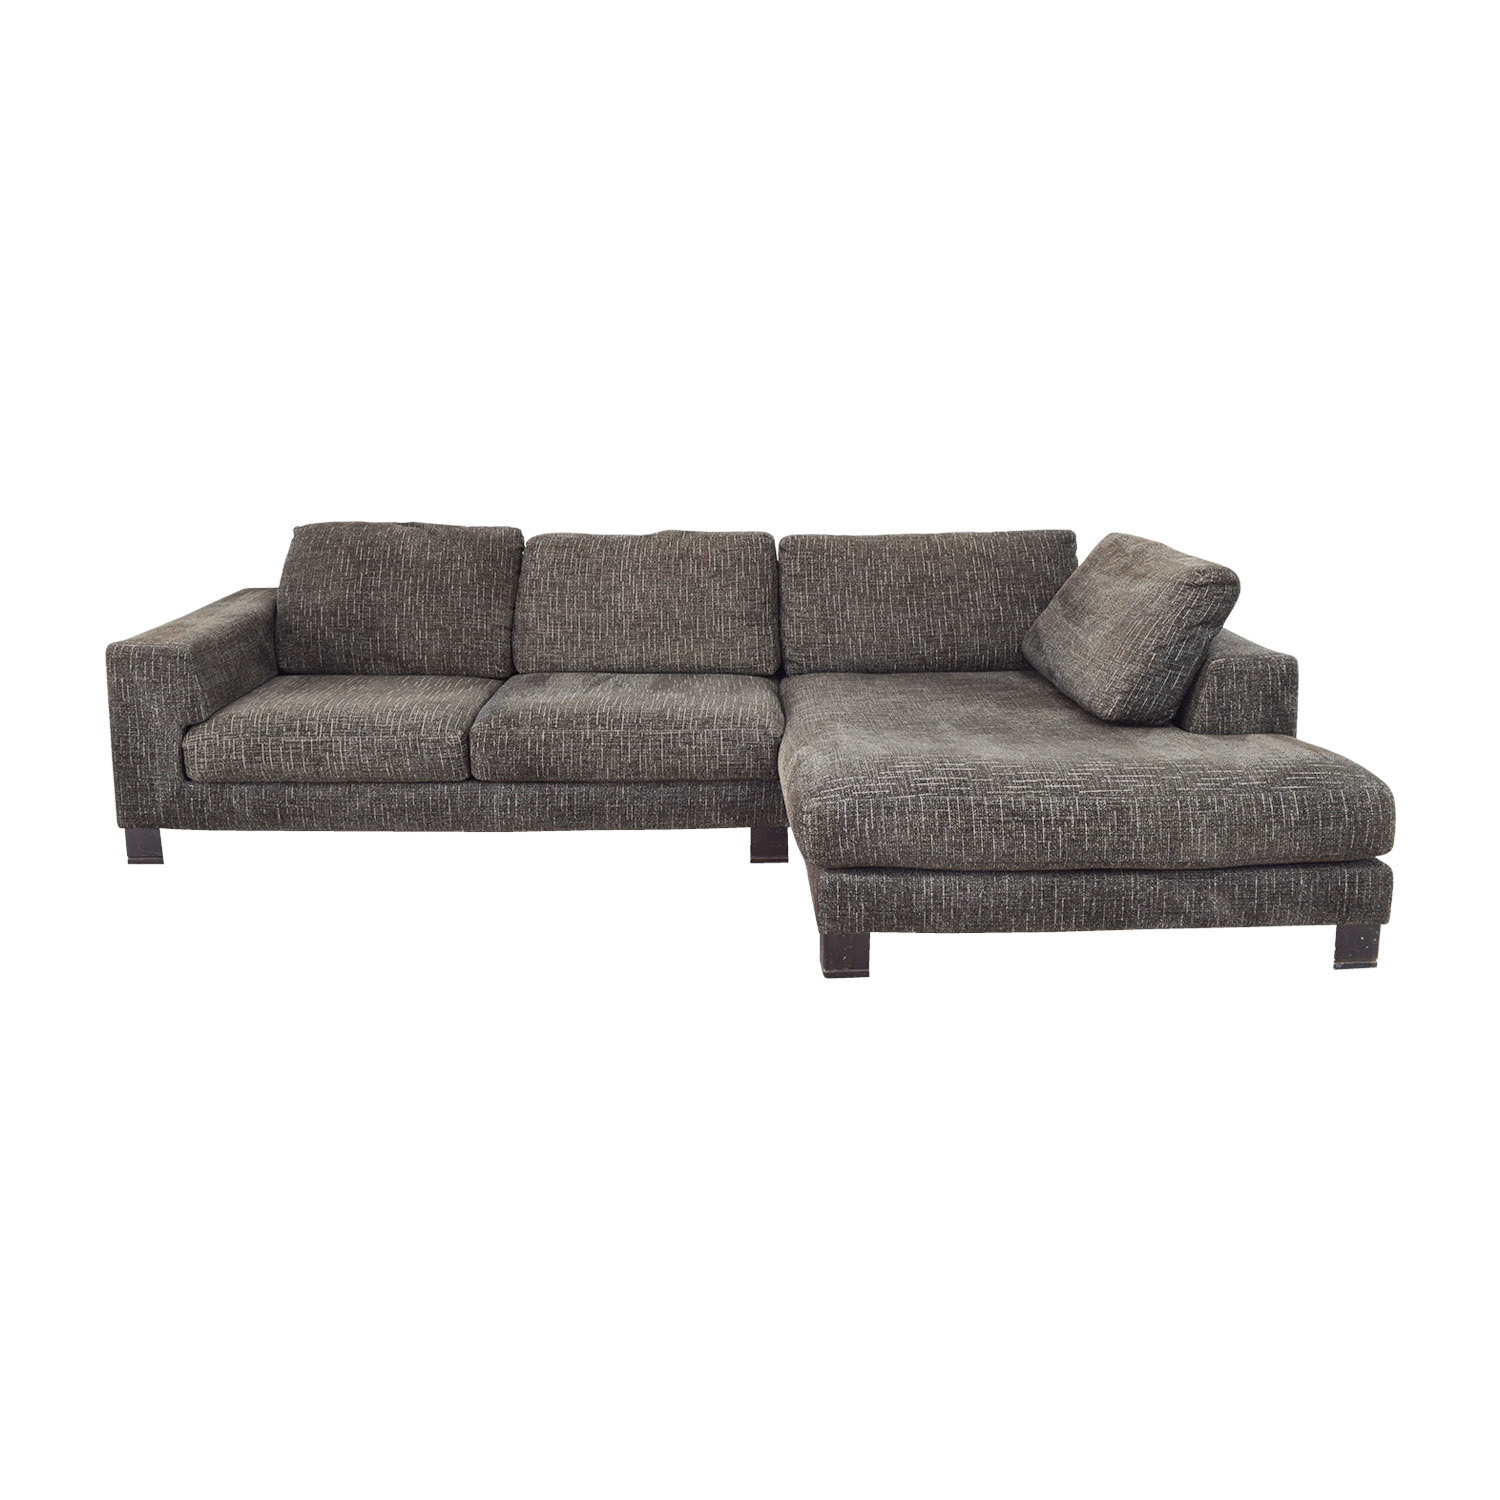 pcs set fabric sleep poundex sand chaise sofa products reversible sectional